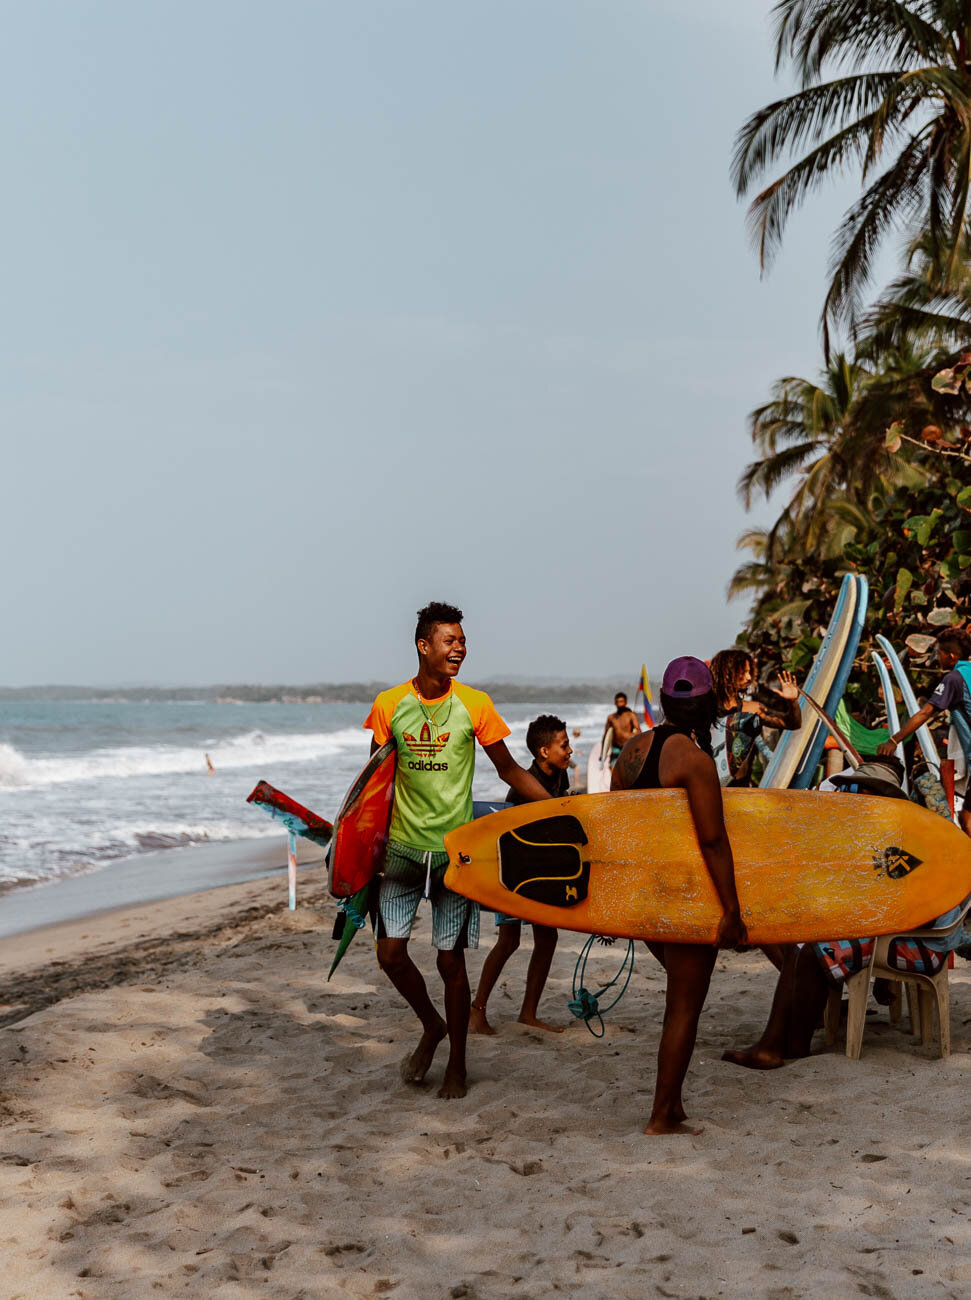 Surfing in Palomino, Colombia